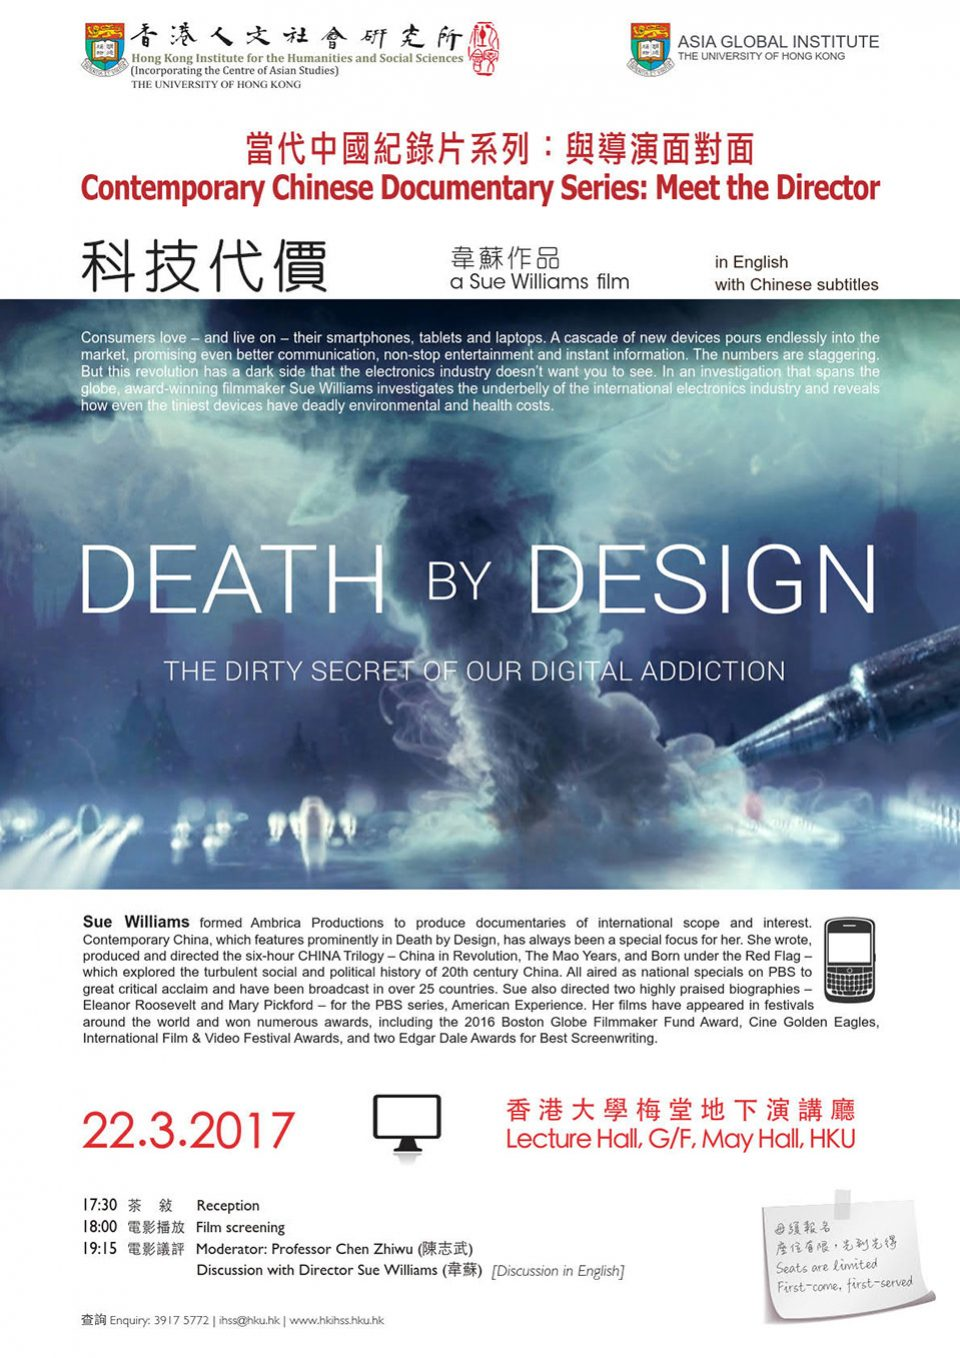 Death by Design 科技代價 (March 22, 2017)